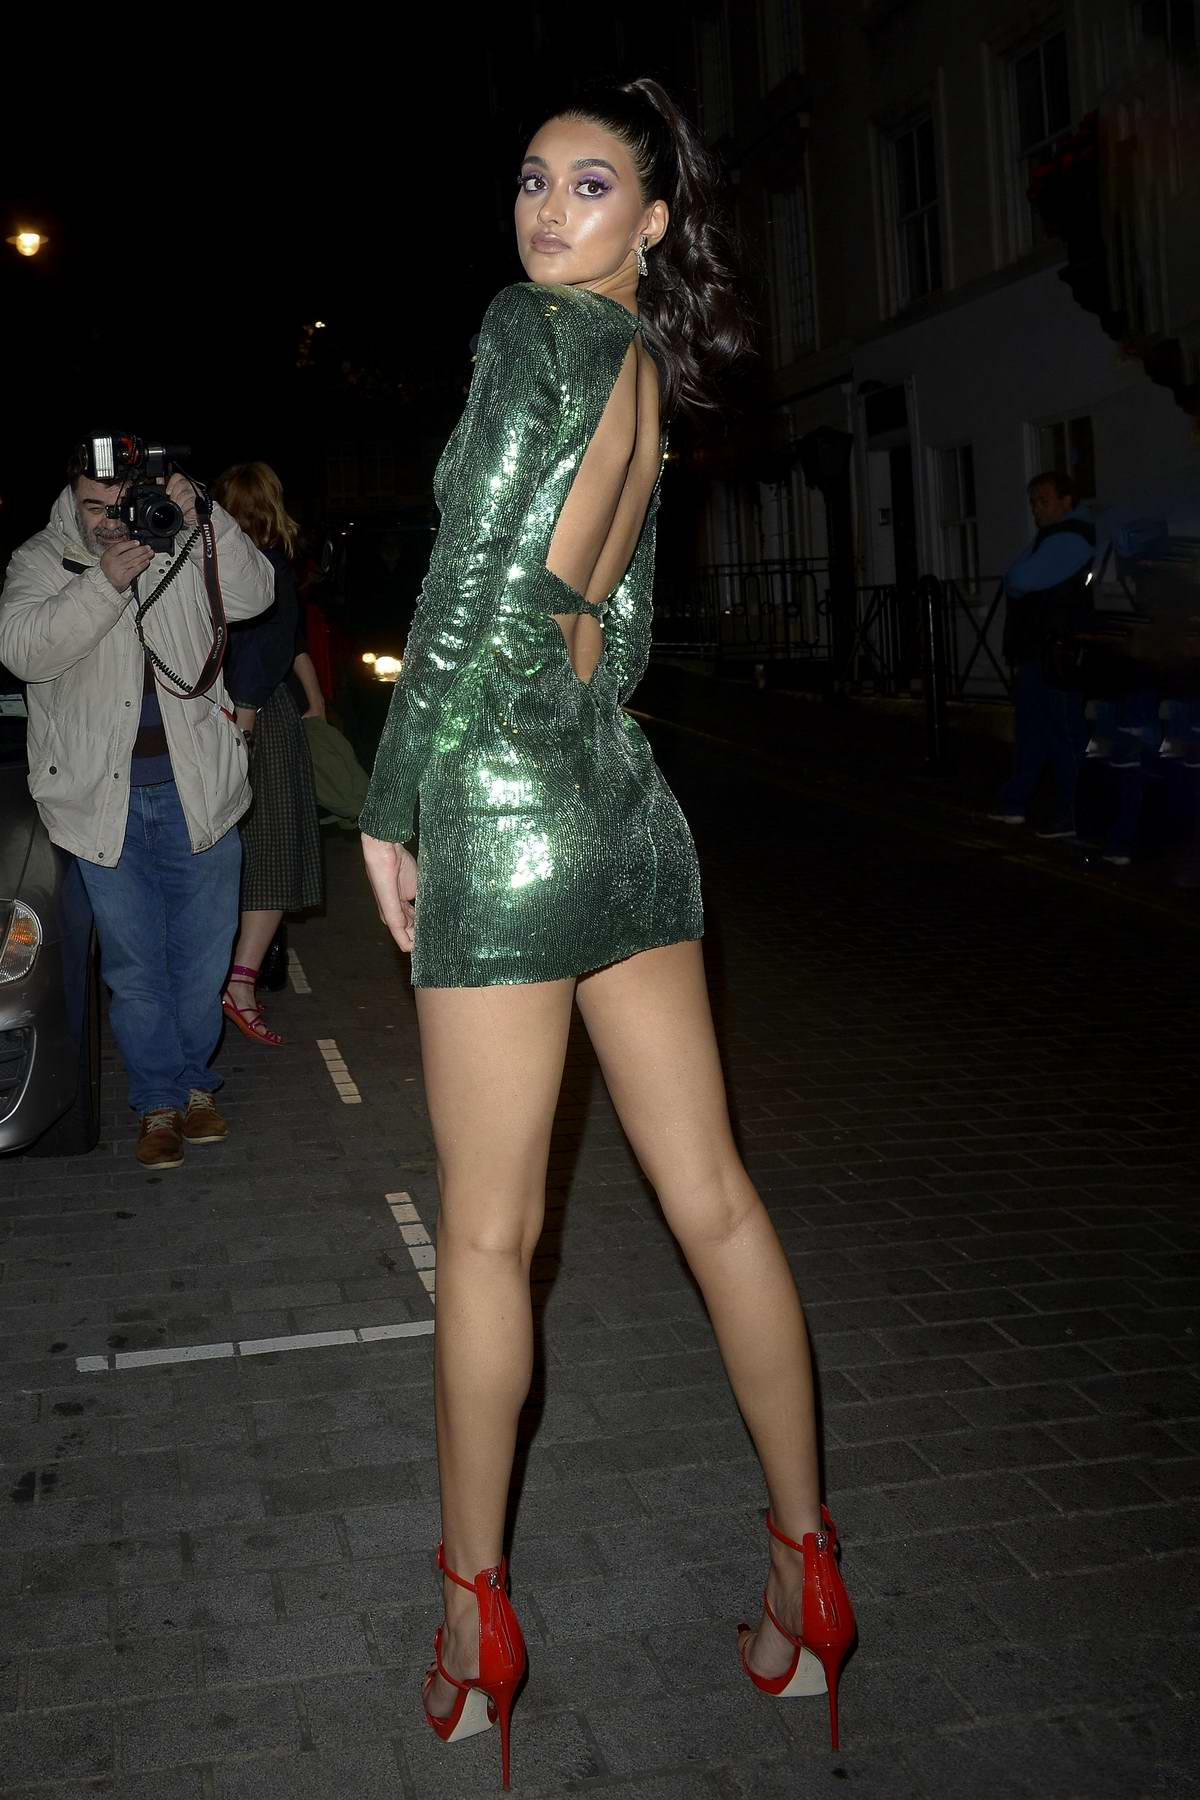 Neelam Gill arriving at the LOVE Magazine 10th Birthday Party at Loulou's during London Fashion Week in London, UK